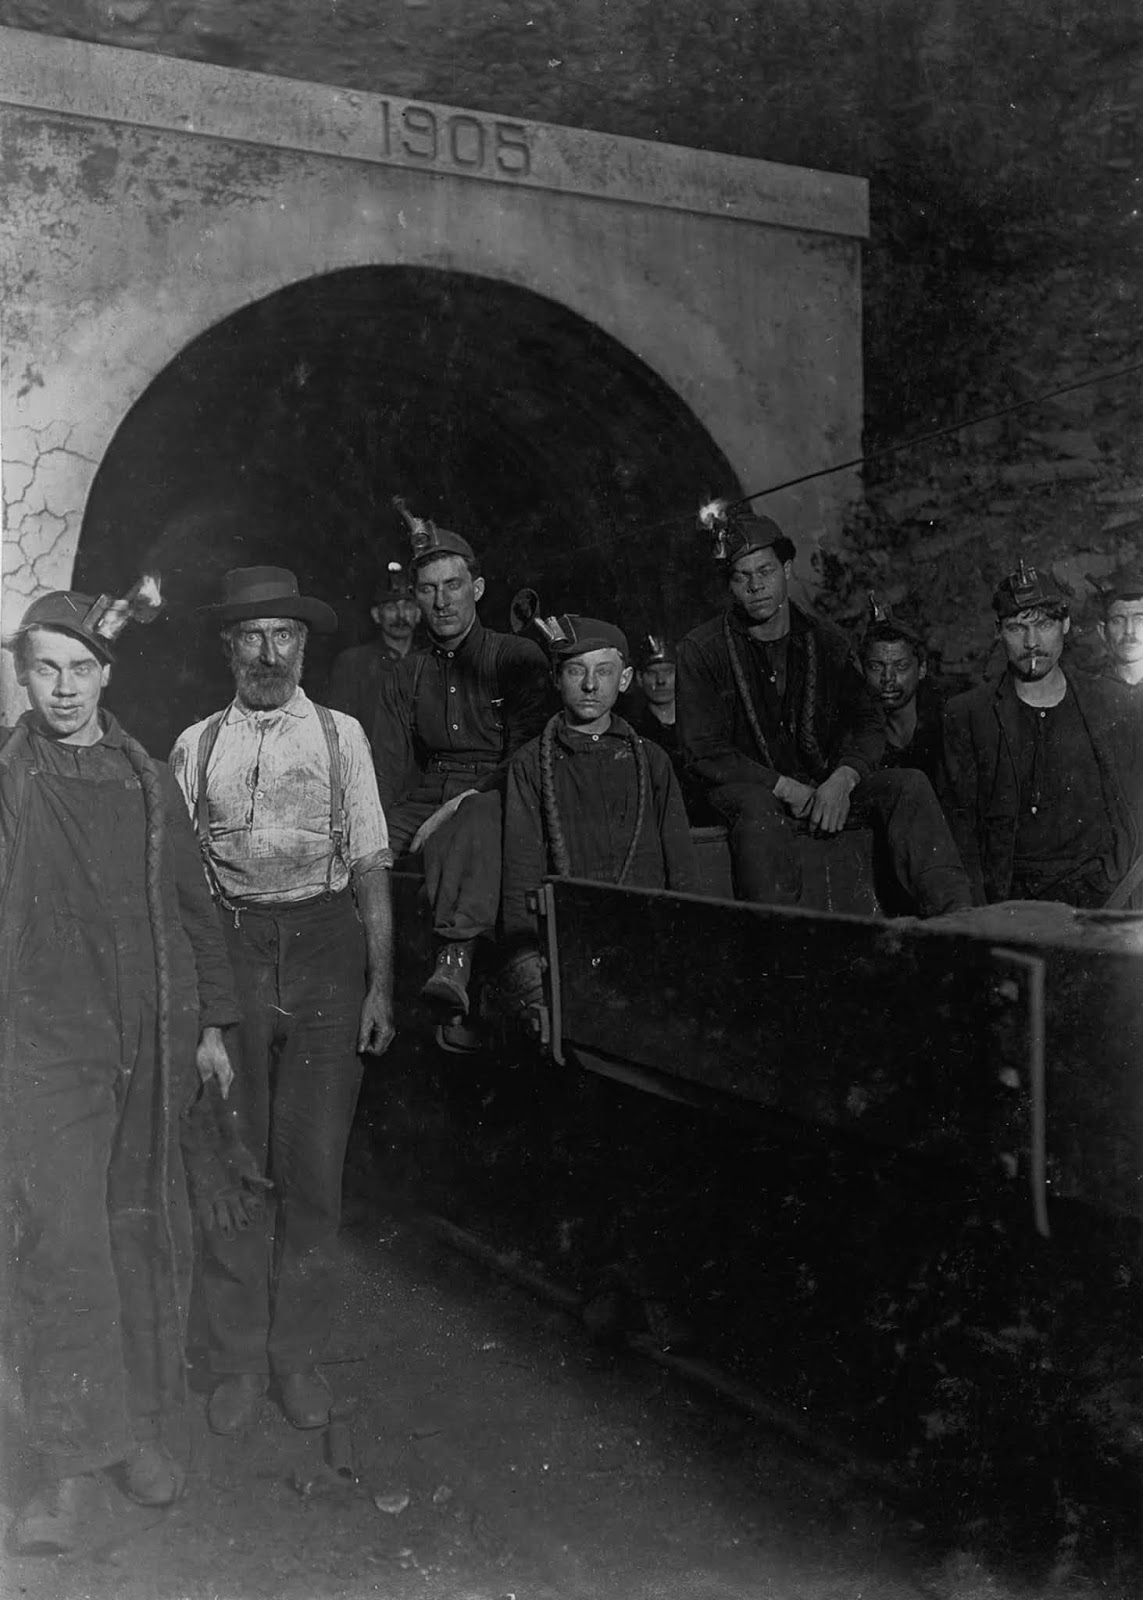 At the entrance to a West Virginia mine. 1908.